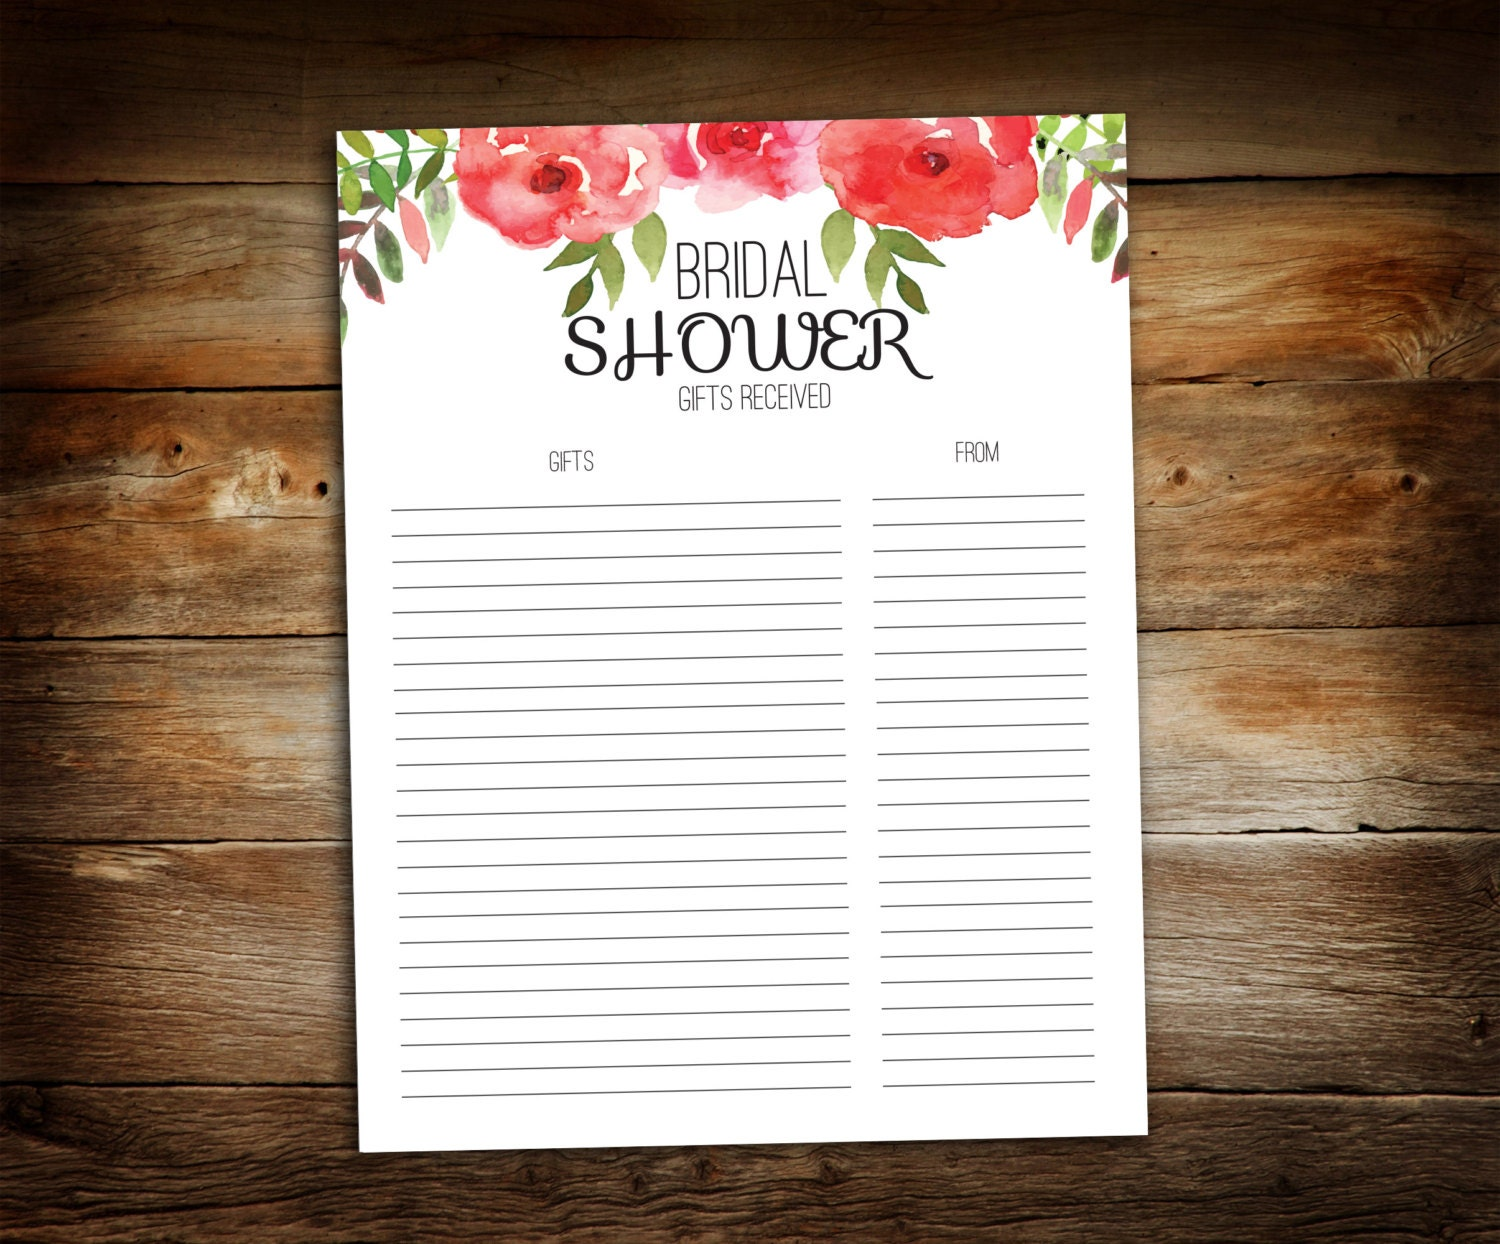 Bridal Shower Gift List List Of Received Gifts Wedding